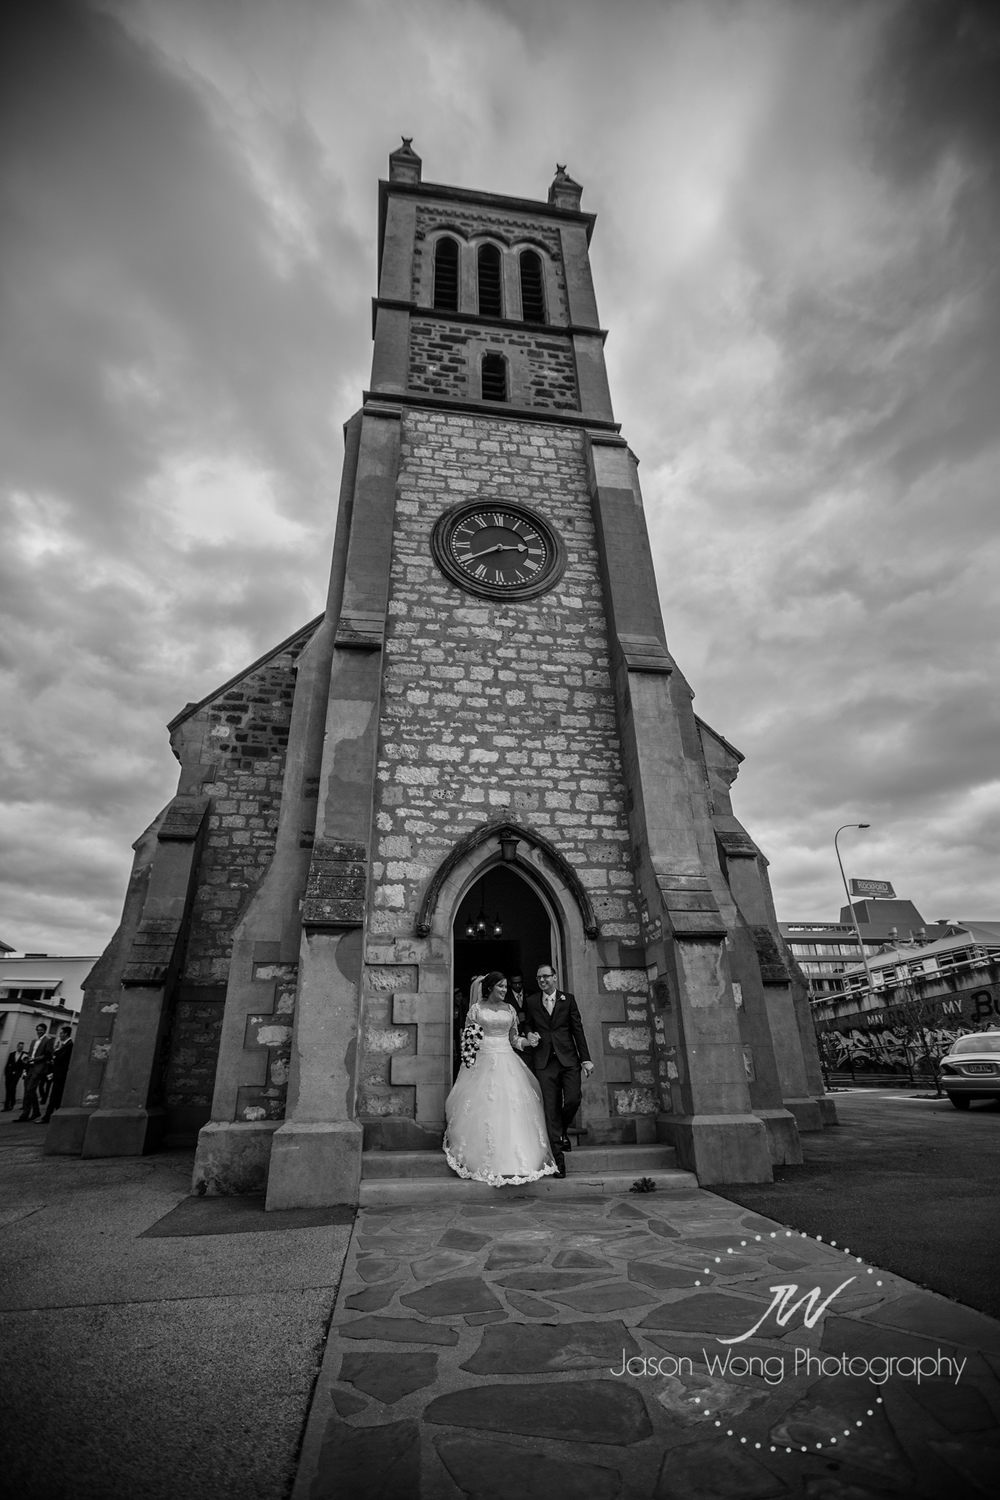 church-wedding-black-and-white.jpg